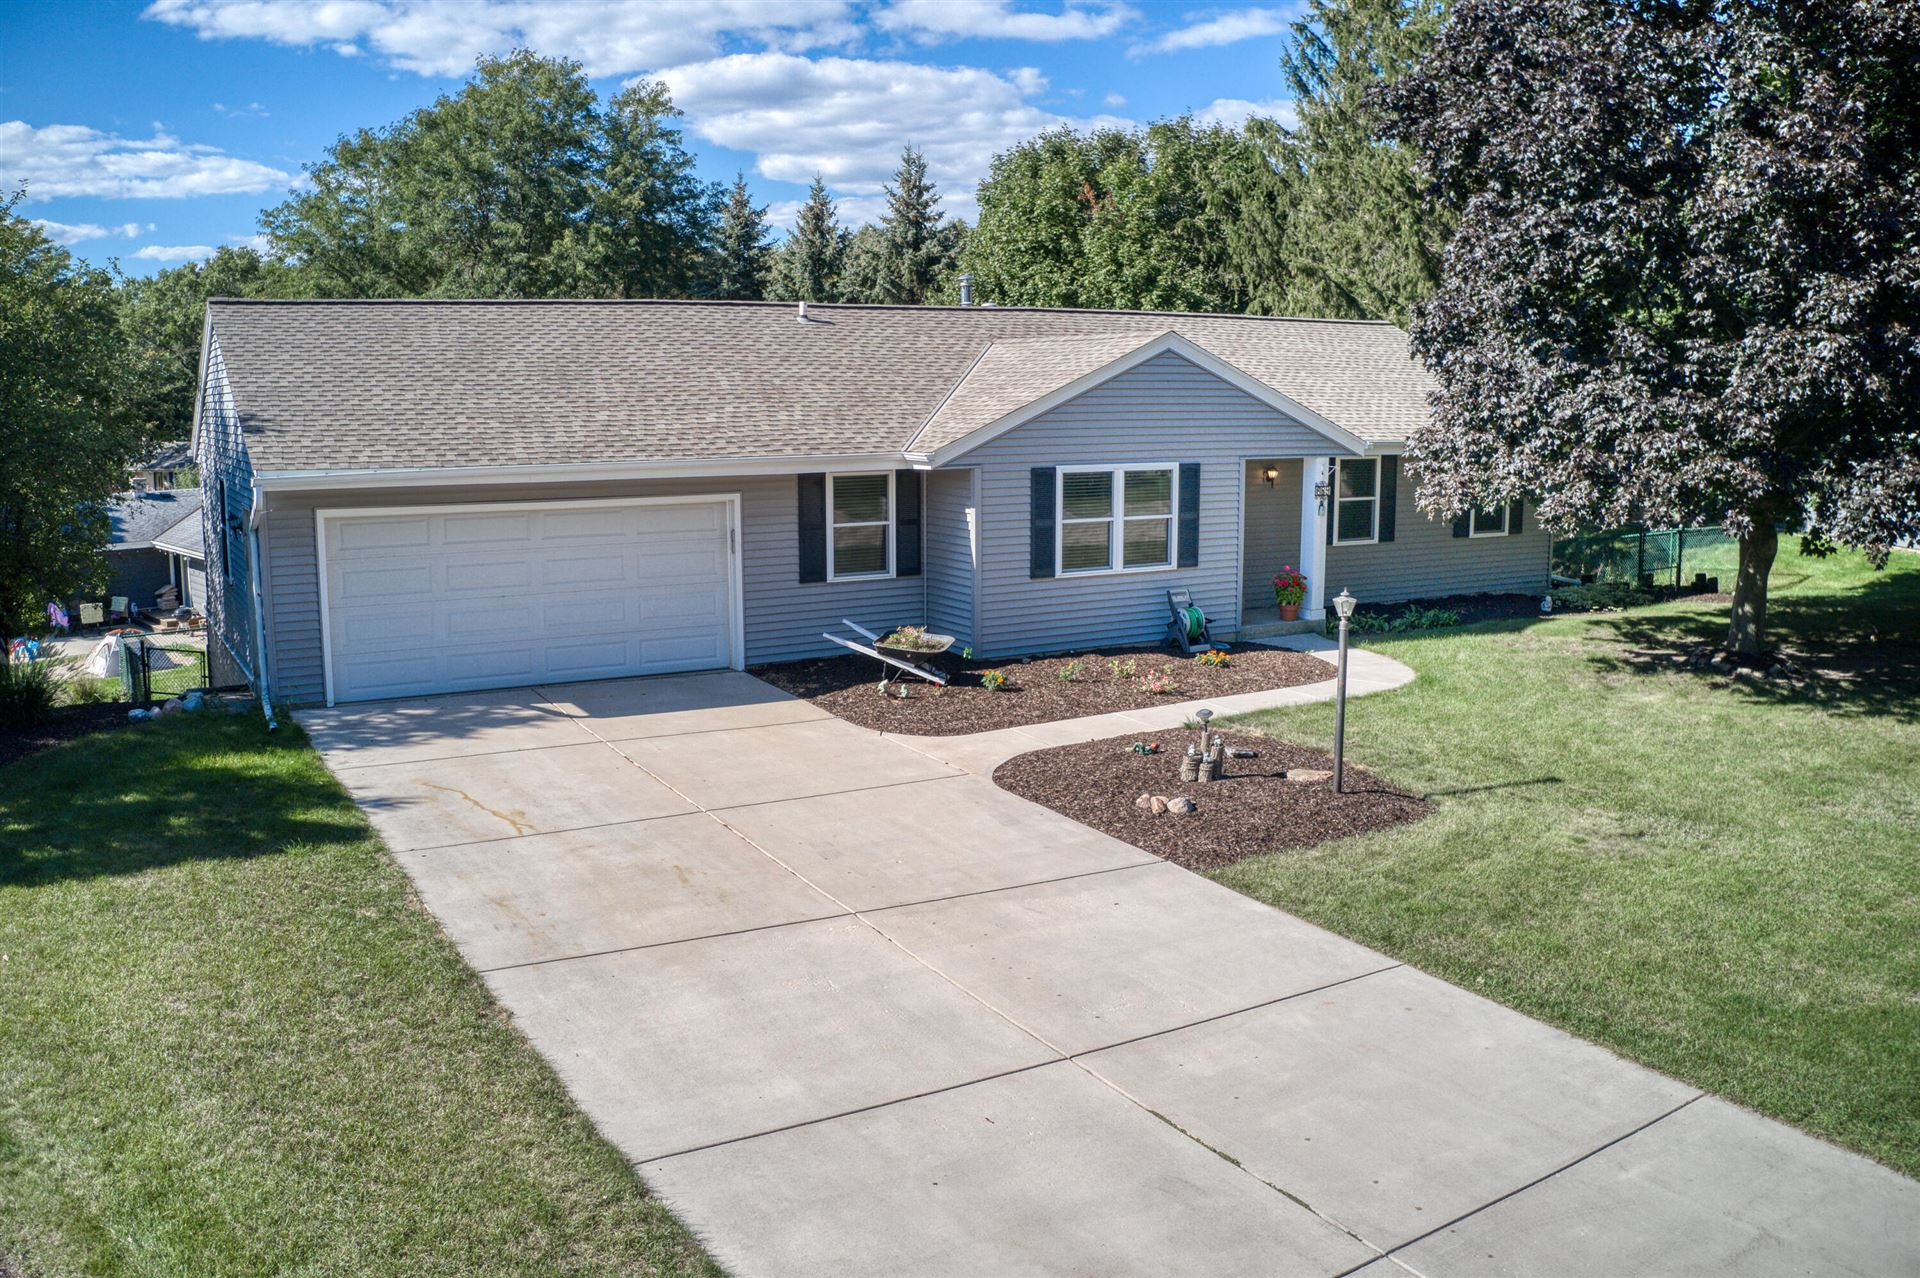 Photo for 689 Cardiff Dr, Hartland, WI 53029 (MLS # 1763762)